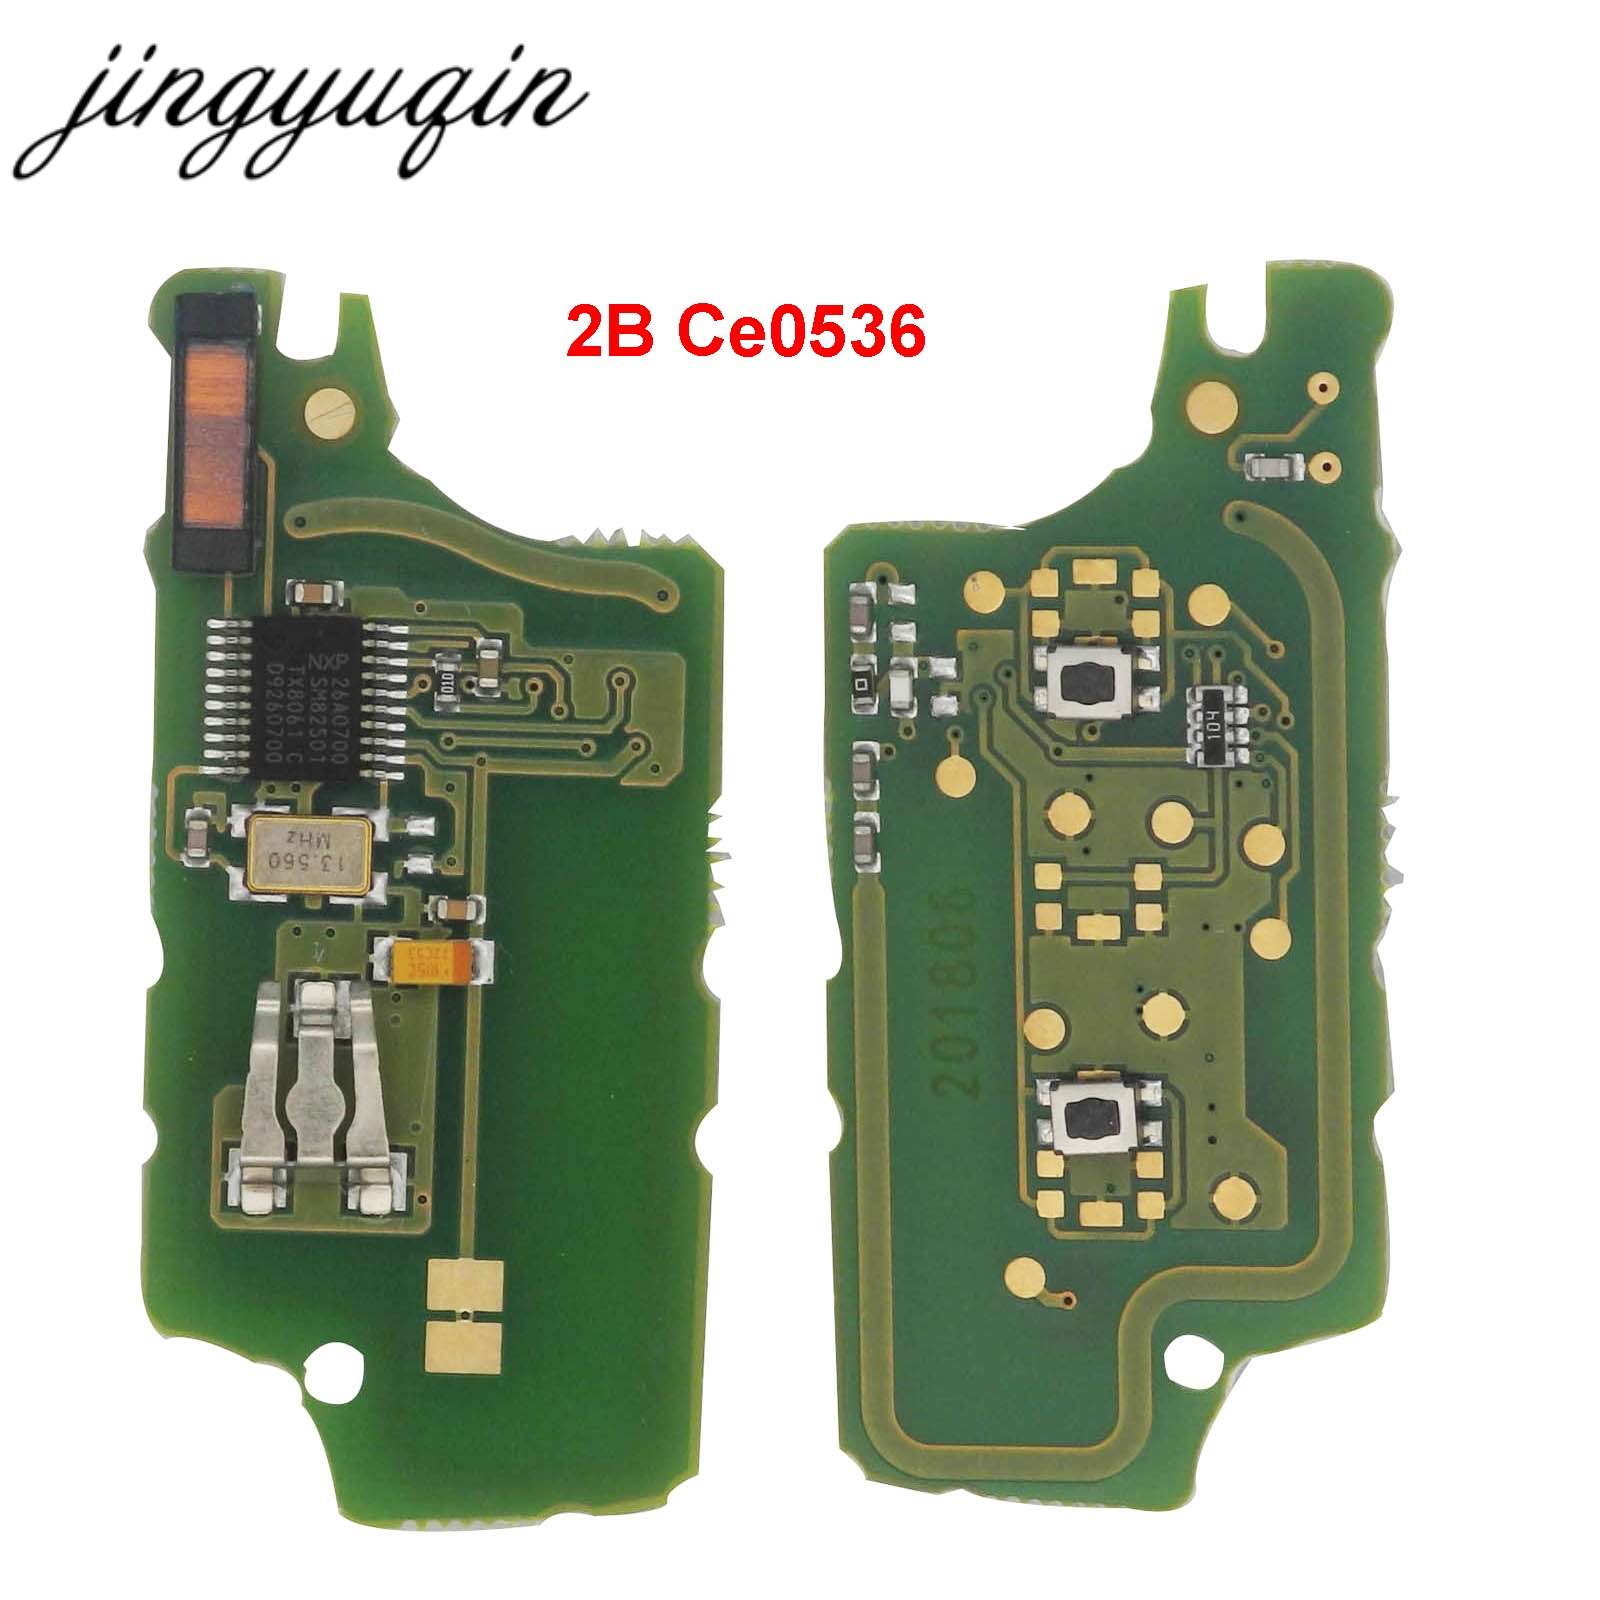 Image 3 - jingyuqin ASK 2B Remote Flip Car Key Electronic Board For Peugeot 307 308 408 407 207 Citroen C2 C3 C4 PICASSO ID46 CE0536/523-in Car Key from Automobiles & Motorcycles